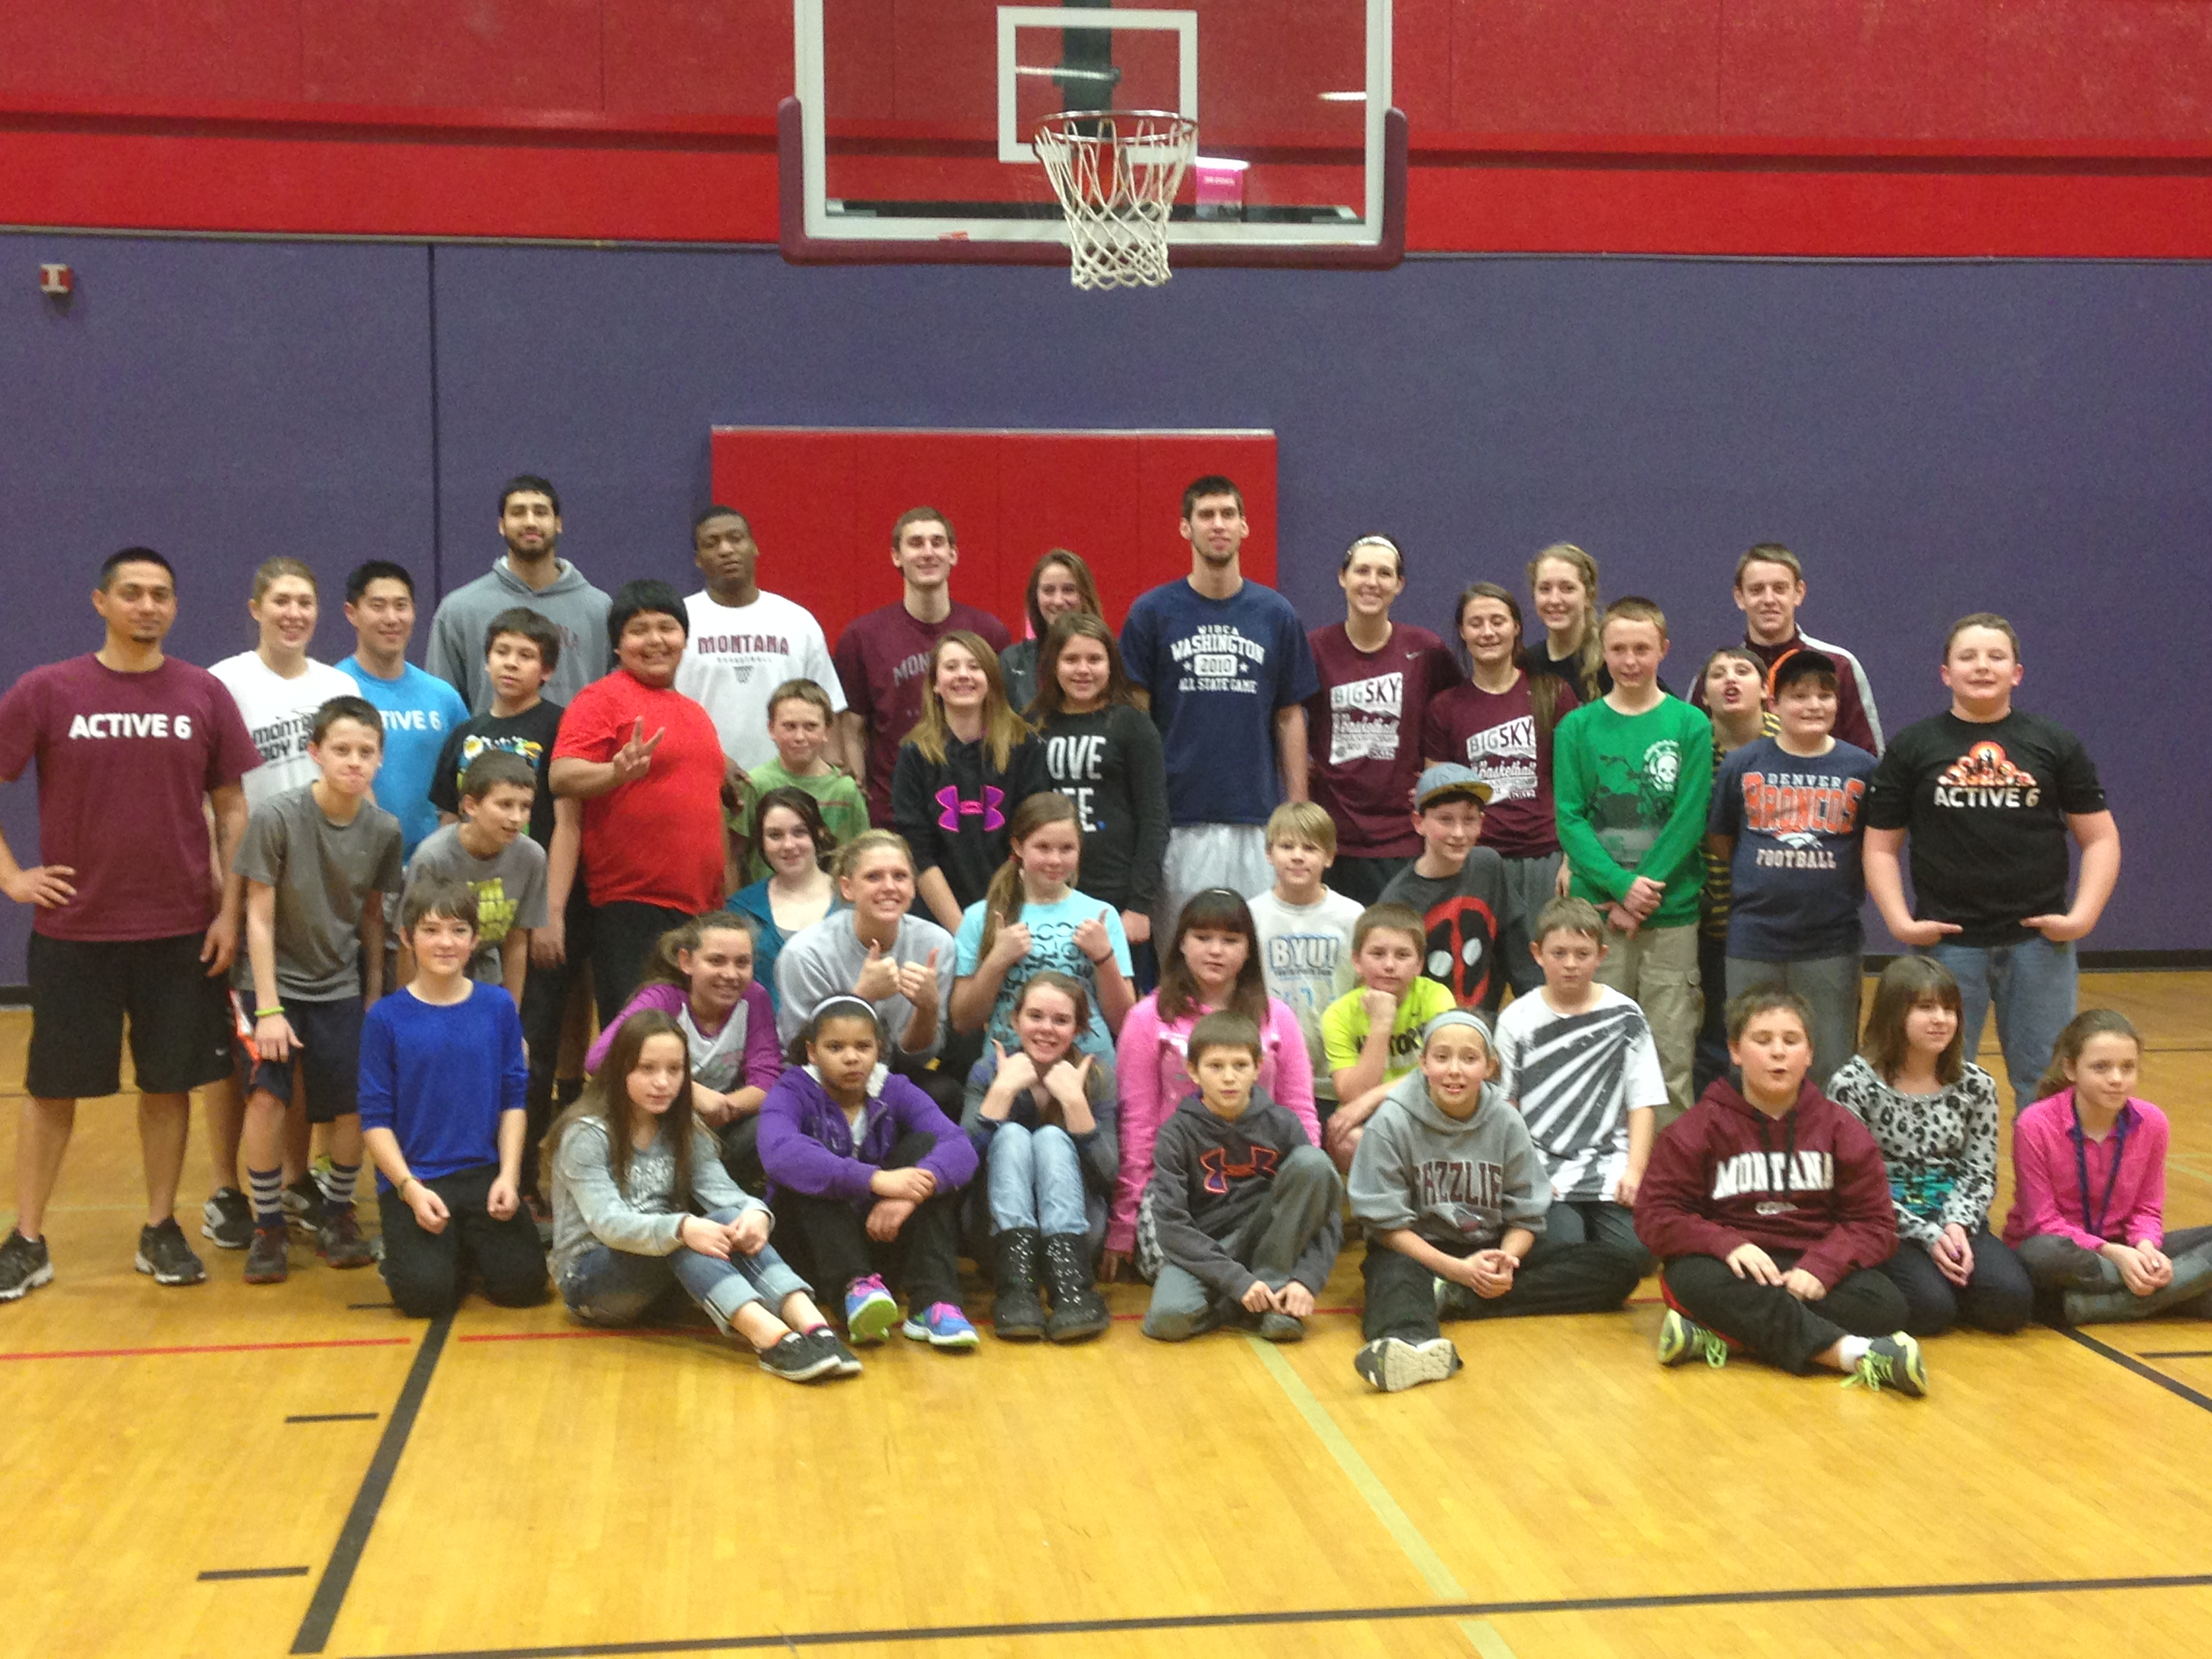 The student-athletes and Active 6 kids at the Missoula YMCA today (photo credit Brynn Molloy)